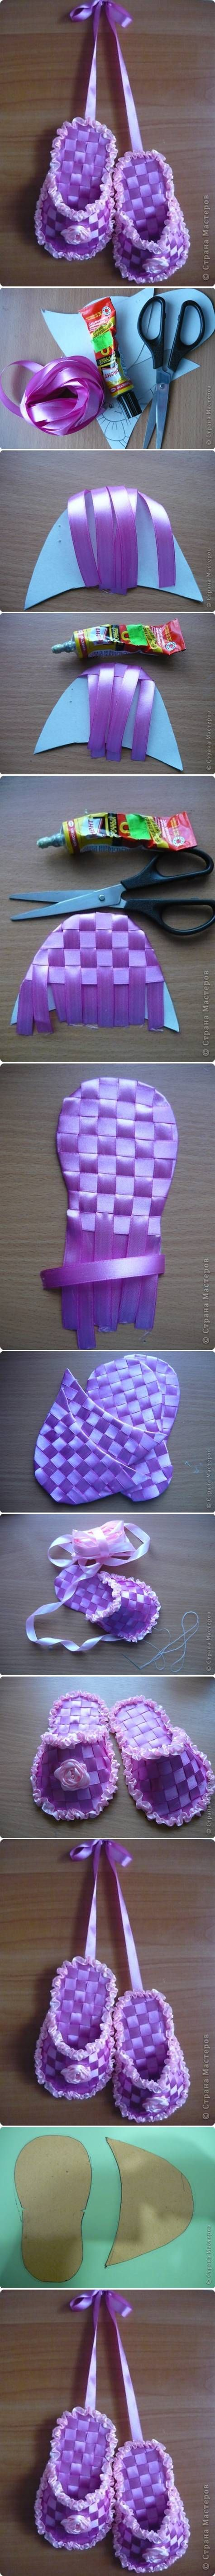 DIY Gift Ribbon Slippers DIY Projects | UsefulDIY.com Follow Us on Facebook ==> http://www.facebook.com/UsefulDiy